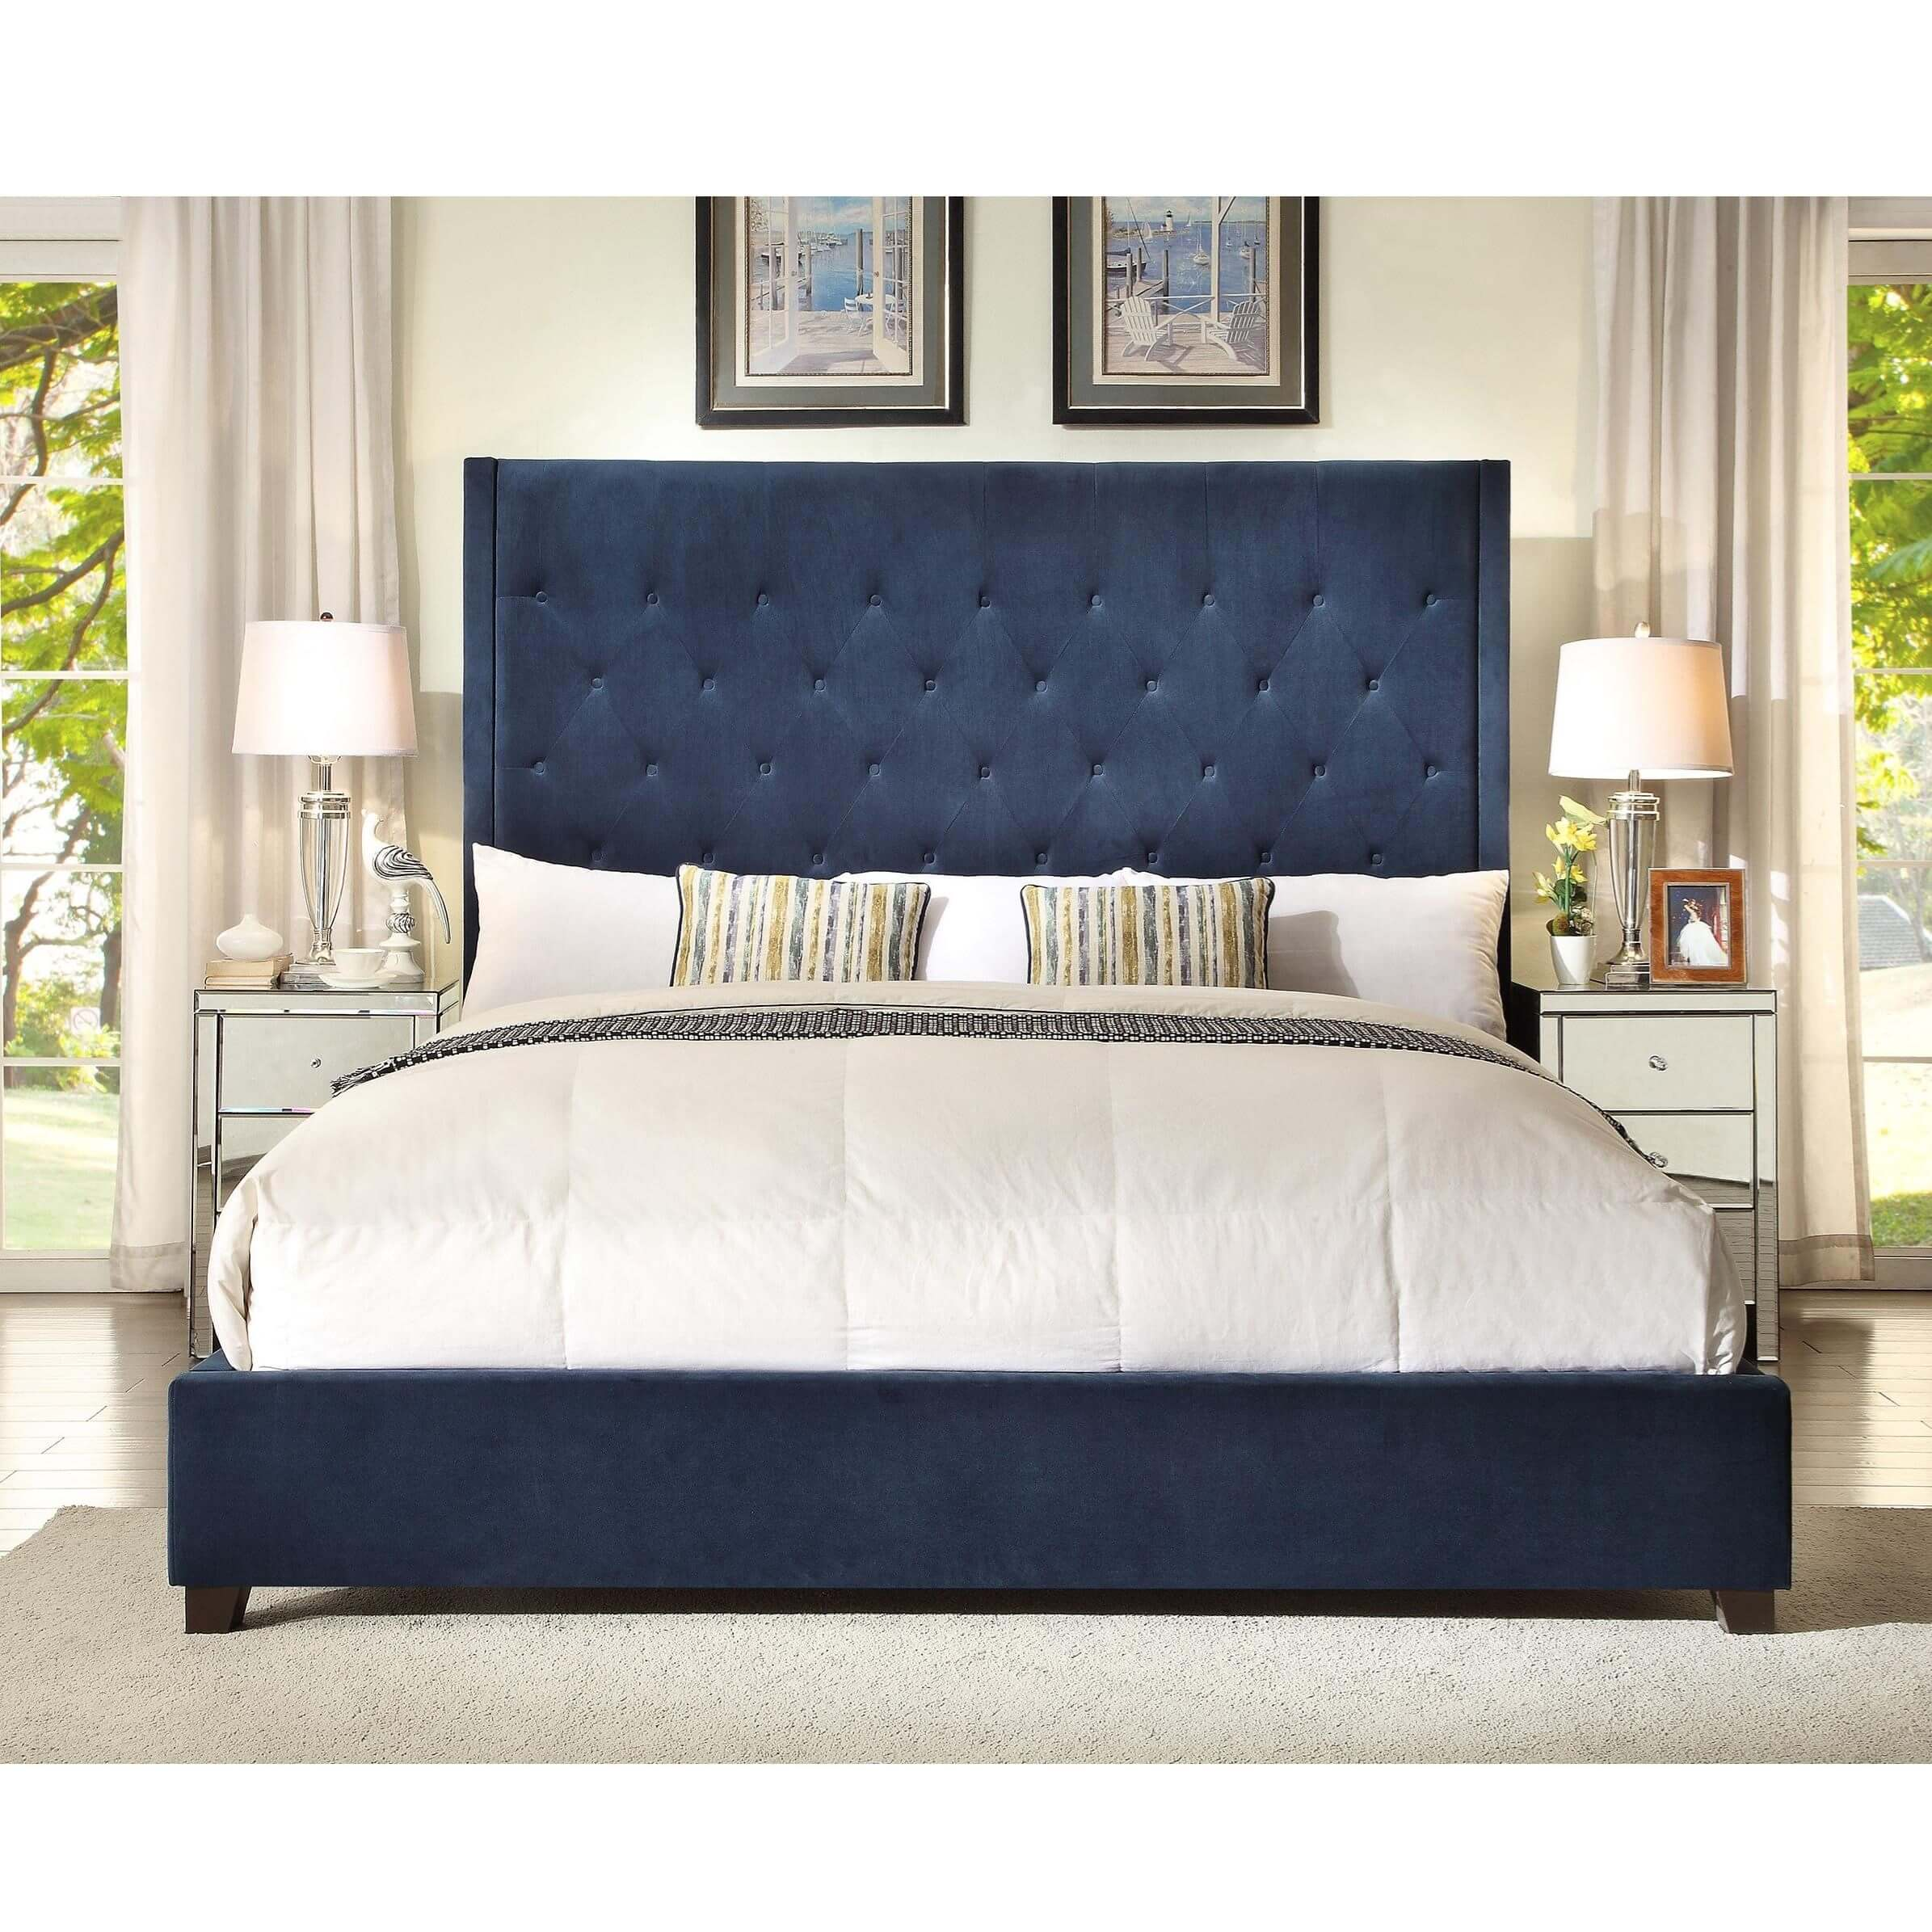 Reese Navy Tufted Bed | Bedroom Furniture